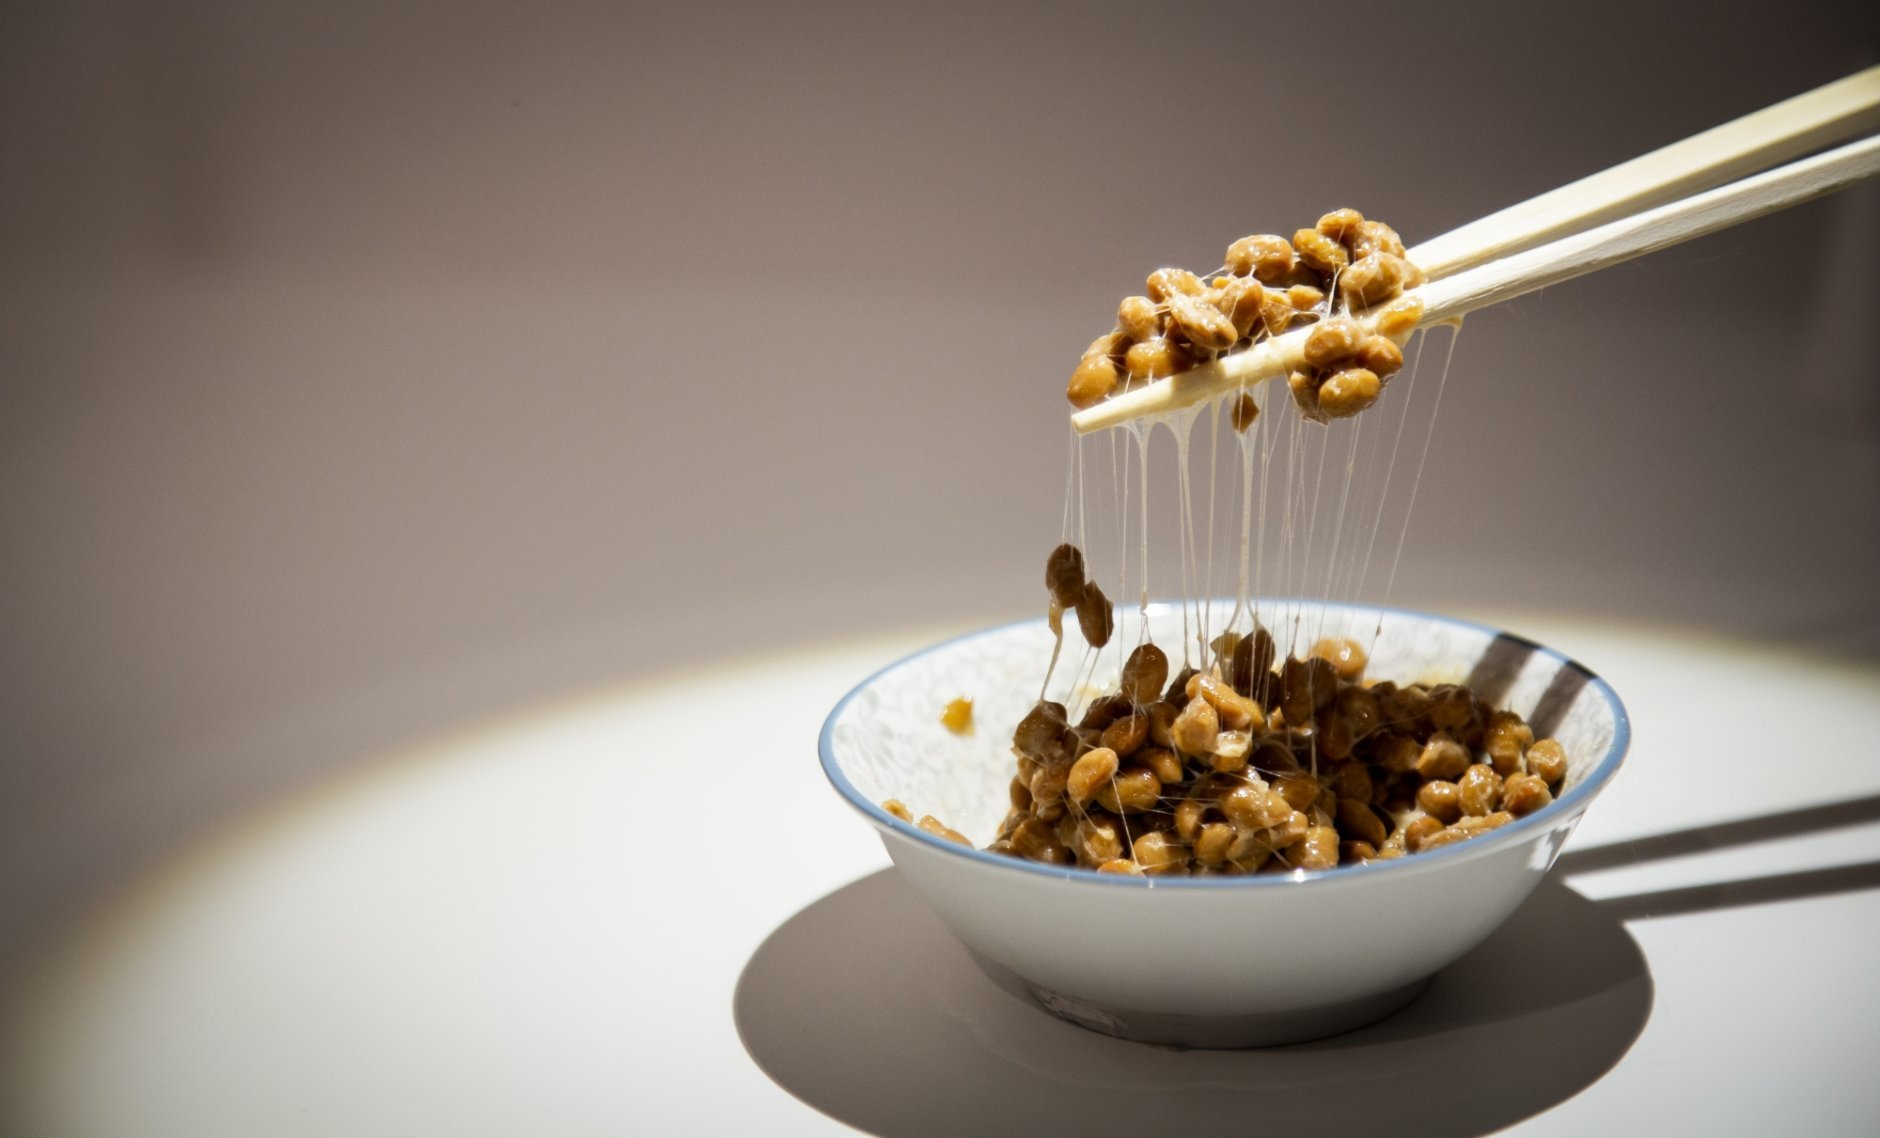 In this photo taken on Sept. 22, 2018 a bowl of Natto a traditional Japanese food made from soybeans fermented with Bacillus subtilis var, on display at the Disgusting Food Museum, in Malmo, Sweden. Dozen of foods likely to provoke extreme disgust in many people _ but considered palatable, even precious delicacies, in their home cultures _ go on display Wednesday, Oct. 31, 2018 as the Disgusting Food Museum makes its world premiere in Malmo, Sweden. (Anja Barte Telin via AP)